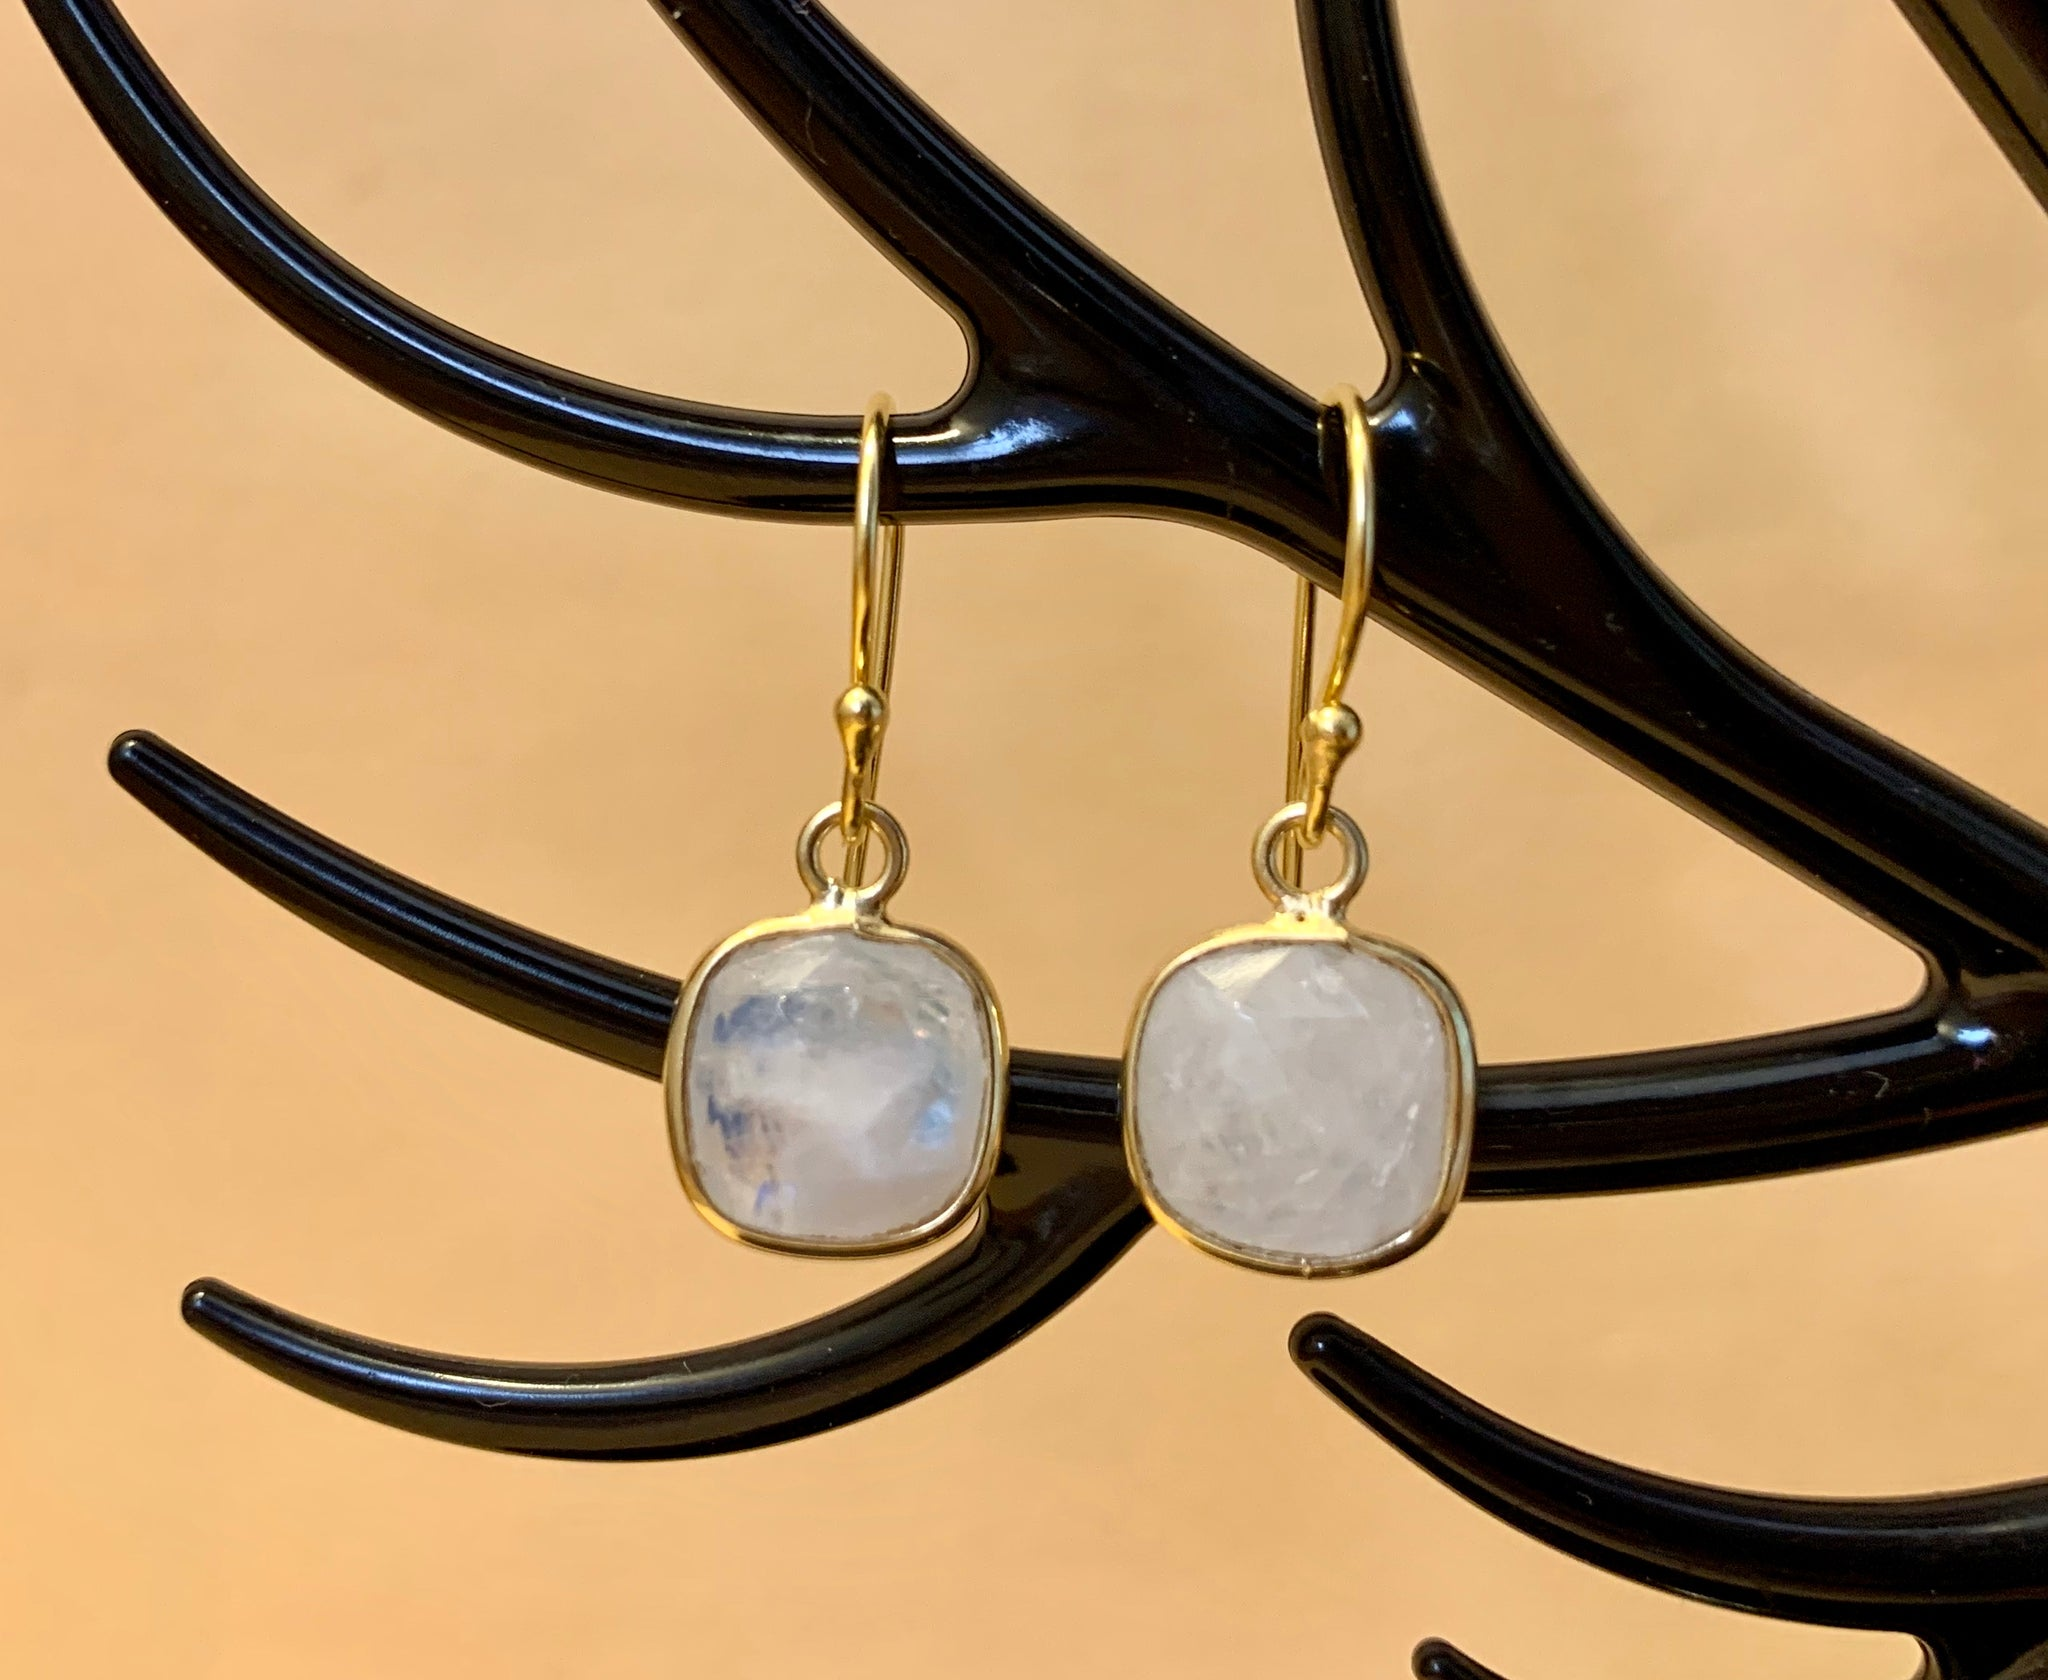 925 Silver Earrings In Cozy Cushion Design With Moonstone Gemstone